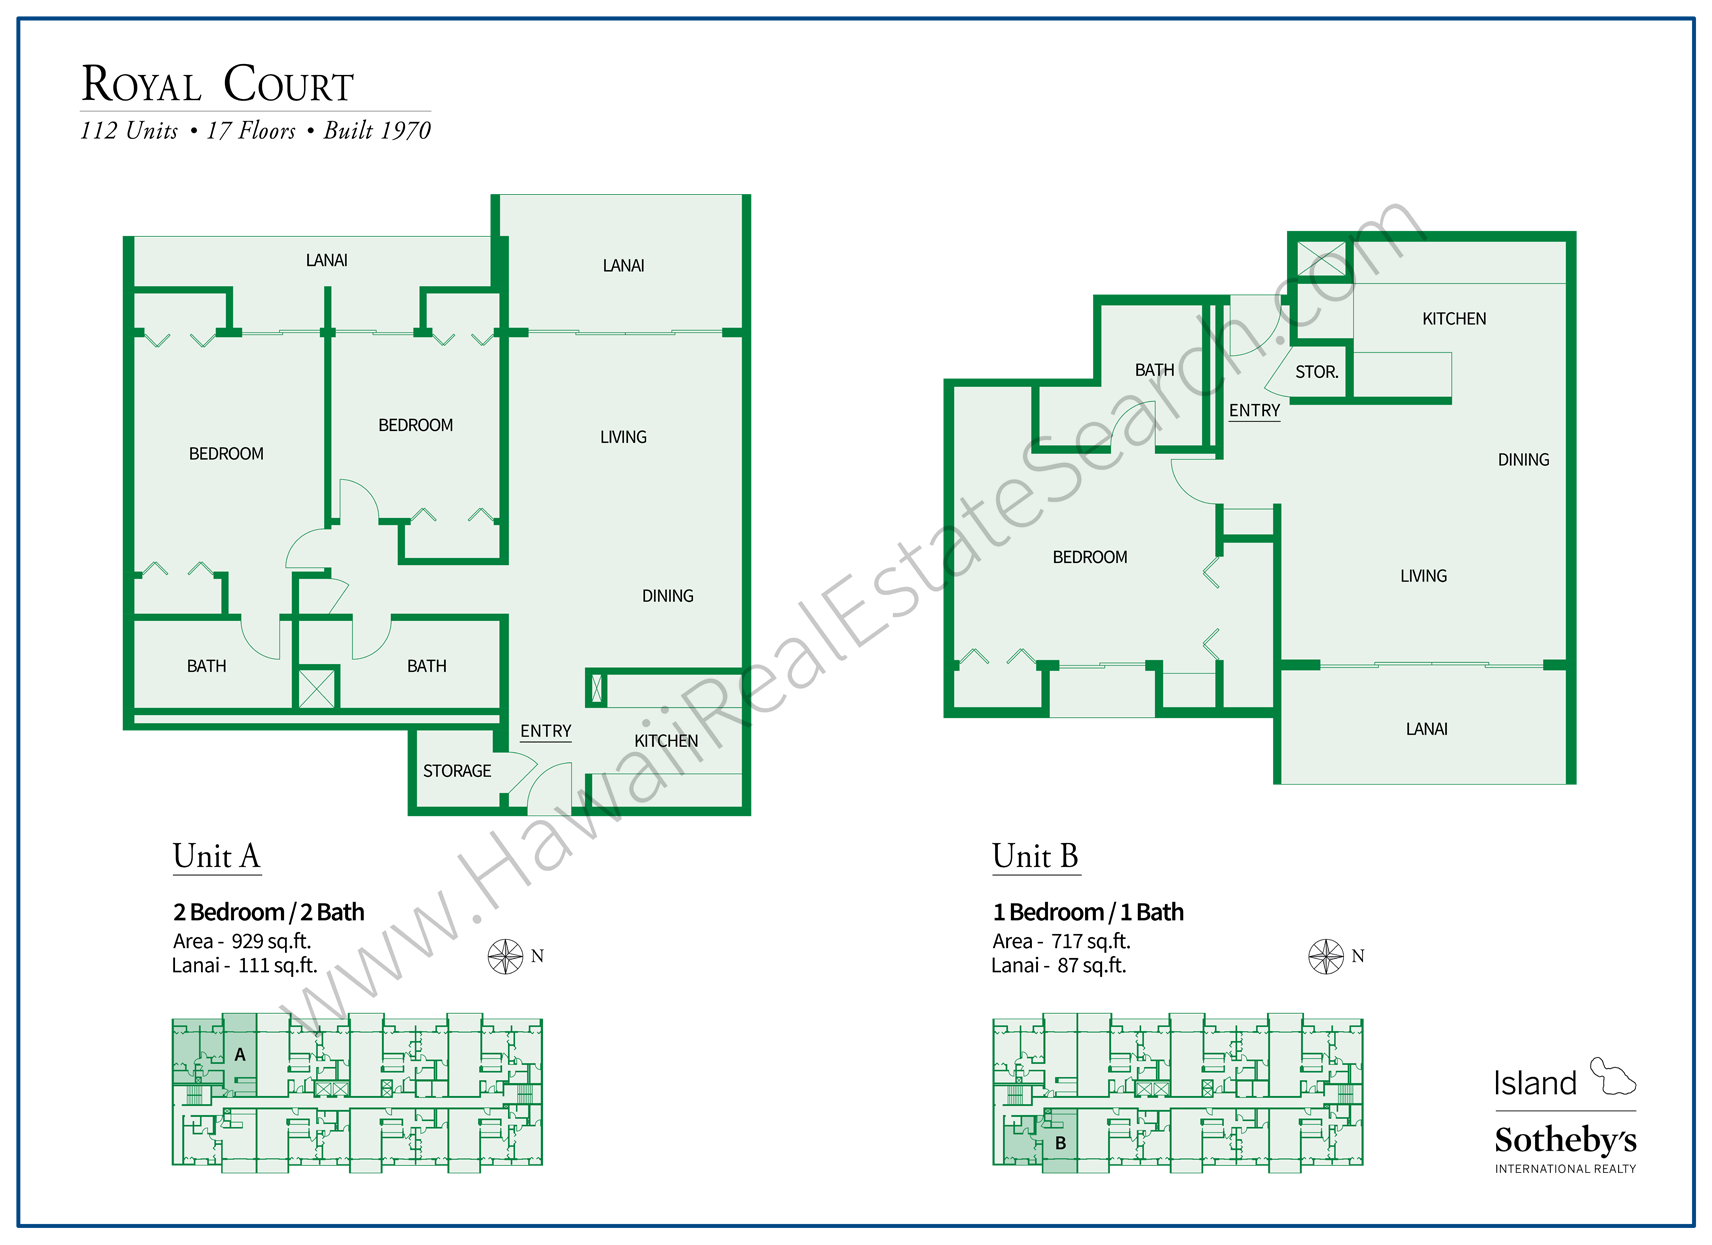 Royal Court Hawaii Floor Plan